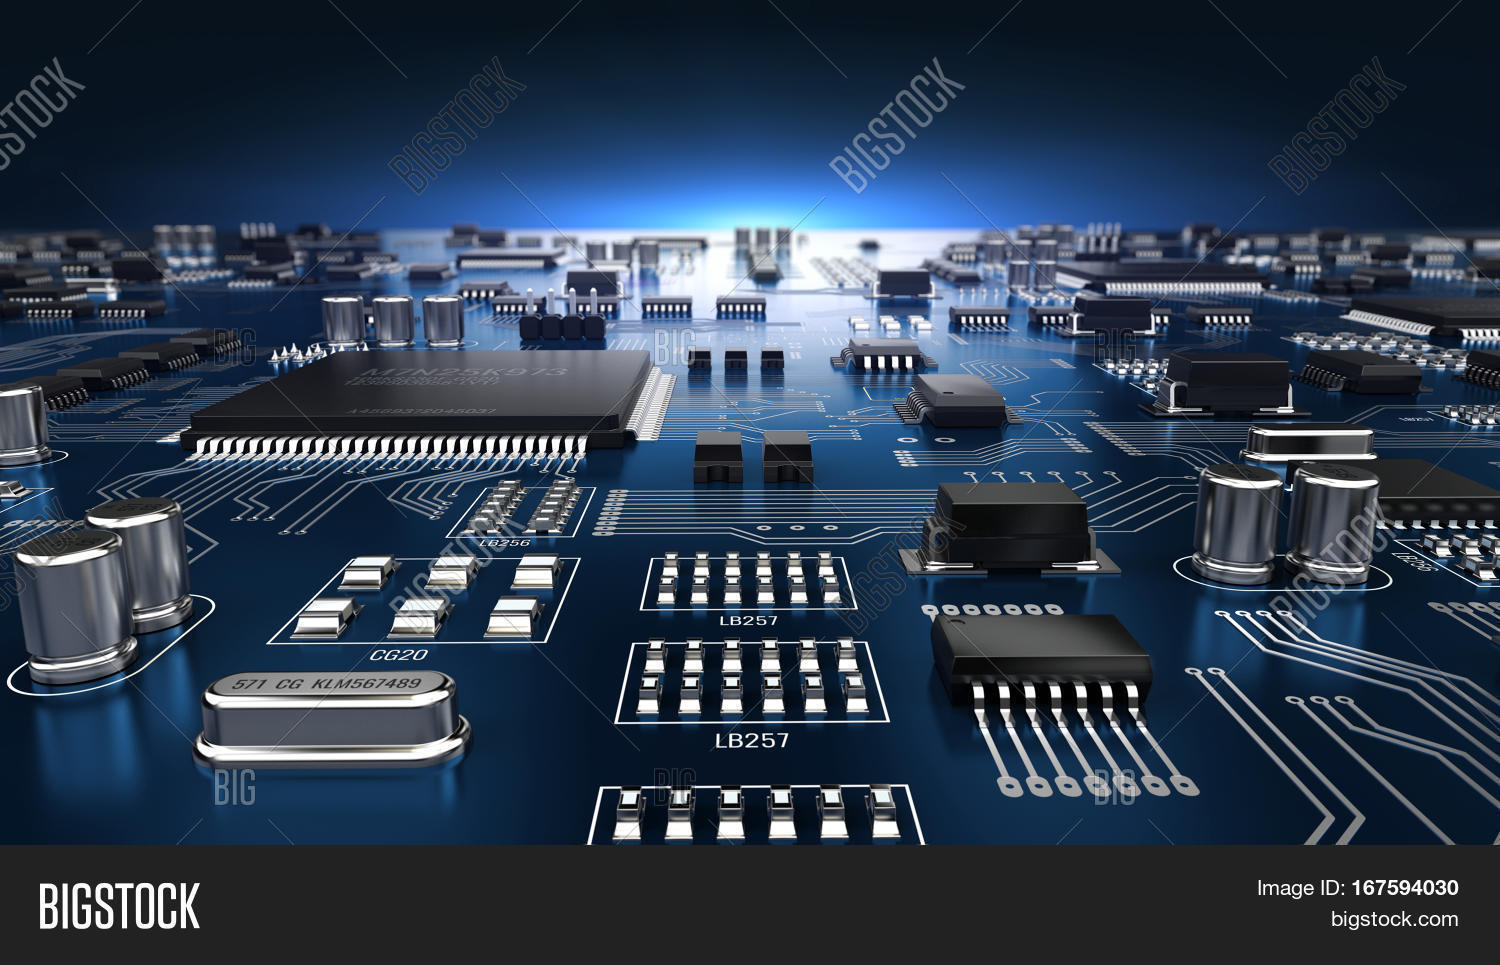 High Tech Electronic Image Photo Free Trial Bigstock Circuit Boards Pcb Printed Board With Processor And Microchips 3d Illustration